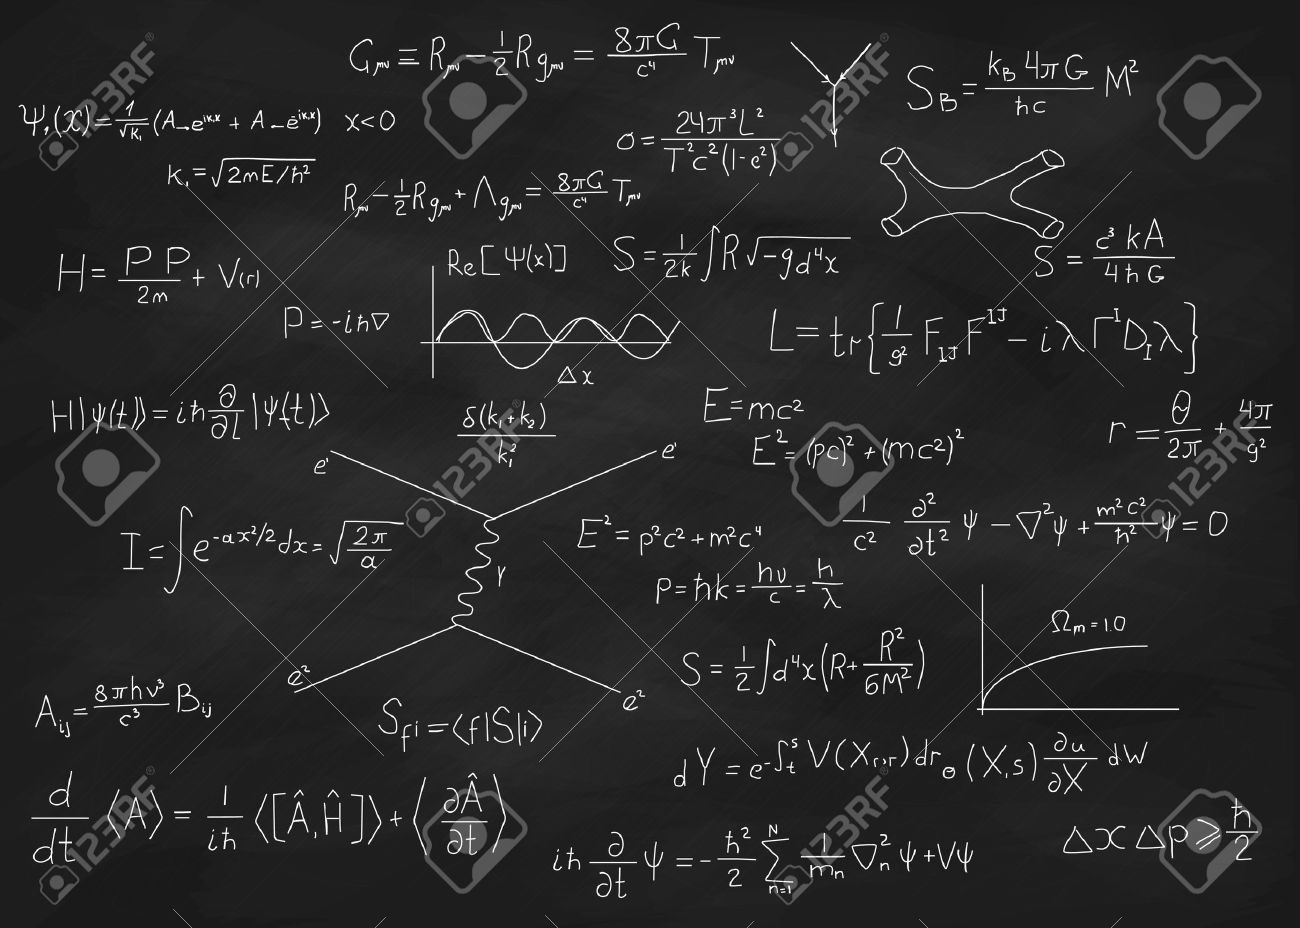 Science blackboard with math. Real physical equations of Einstein relativity theory, string theory and quantum mechanics. Used chalkboard with scratches and stains from chalk piece. - 69345533